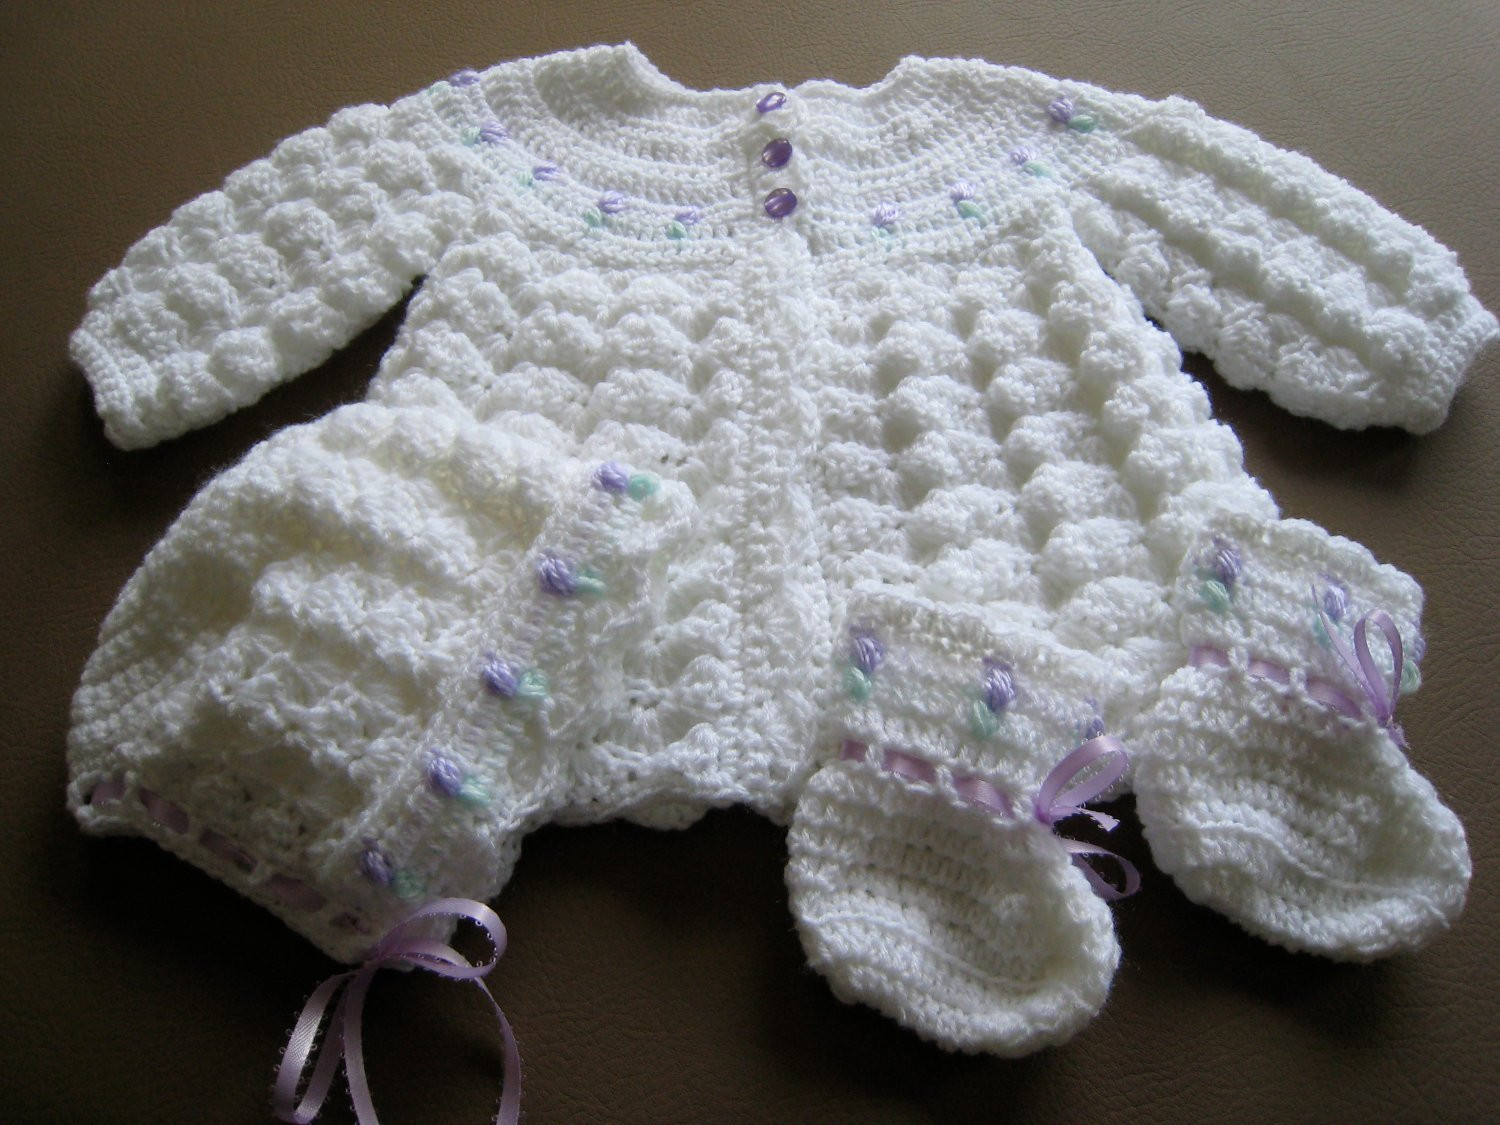 Handmade Crochet Baby GIrls Sweater Set With by canamcreations